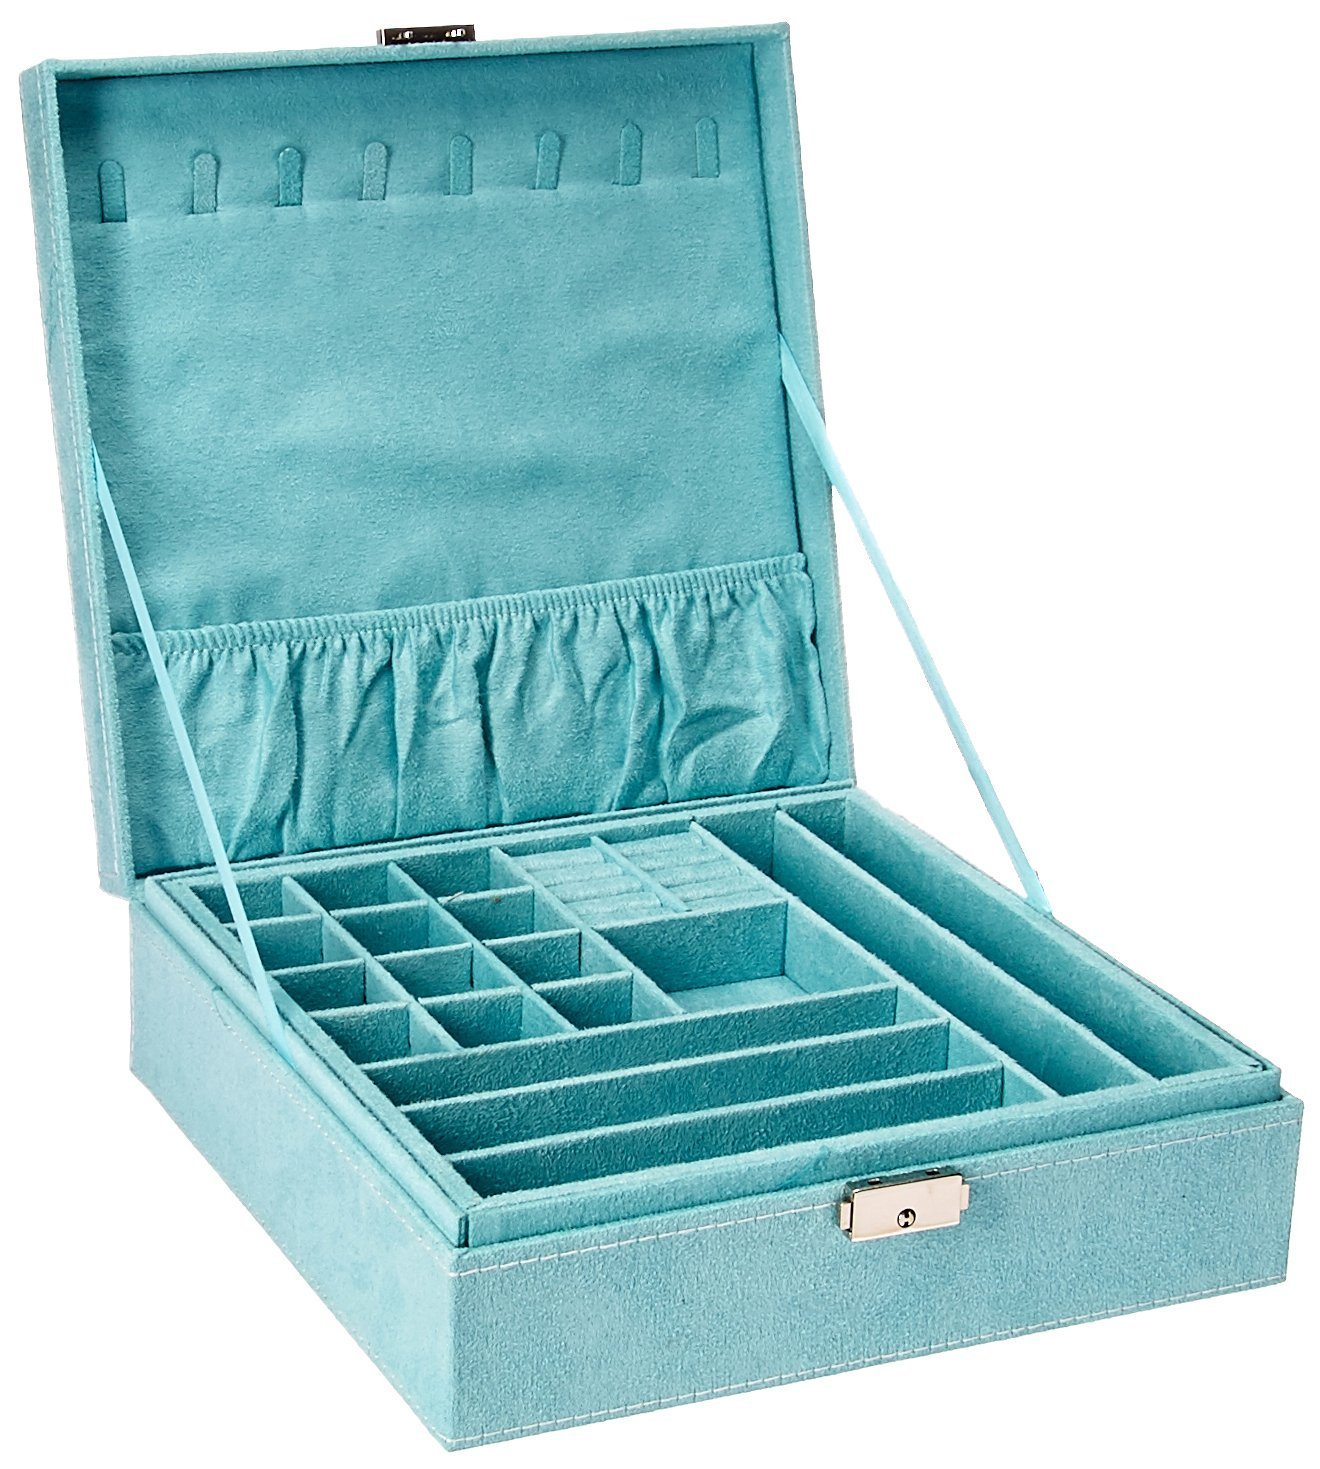 KLOUD City Two-Layer lint Jewelry Box Organizer Display Storage case with Lock (Blue) by KLOUD City